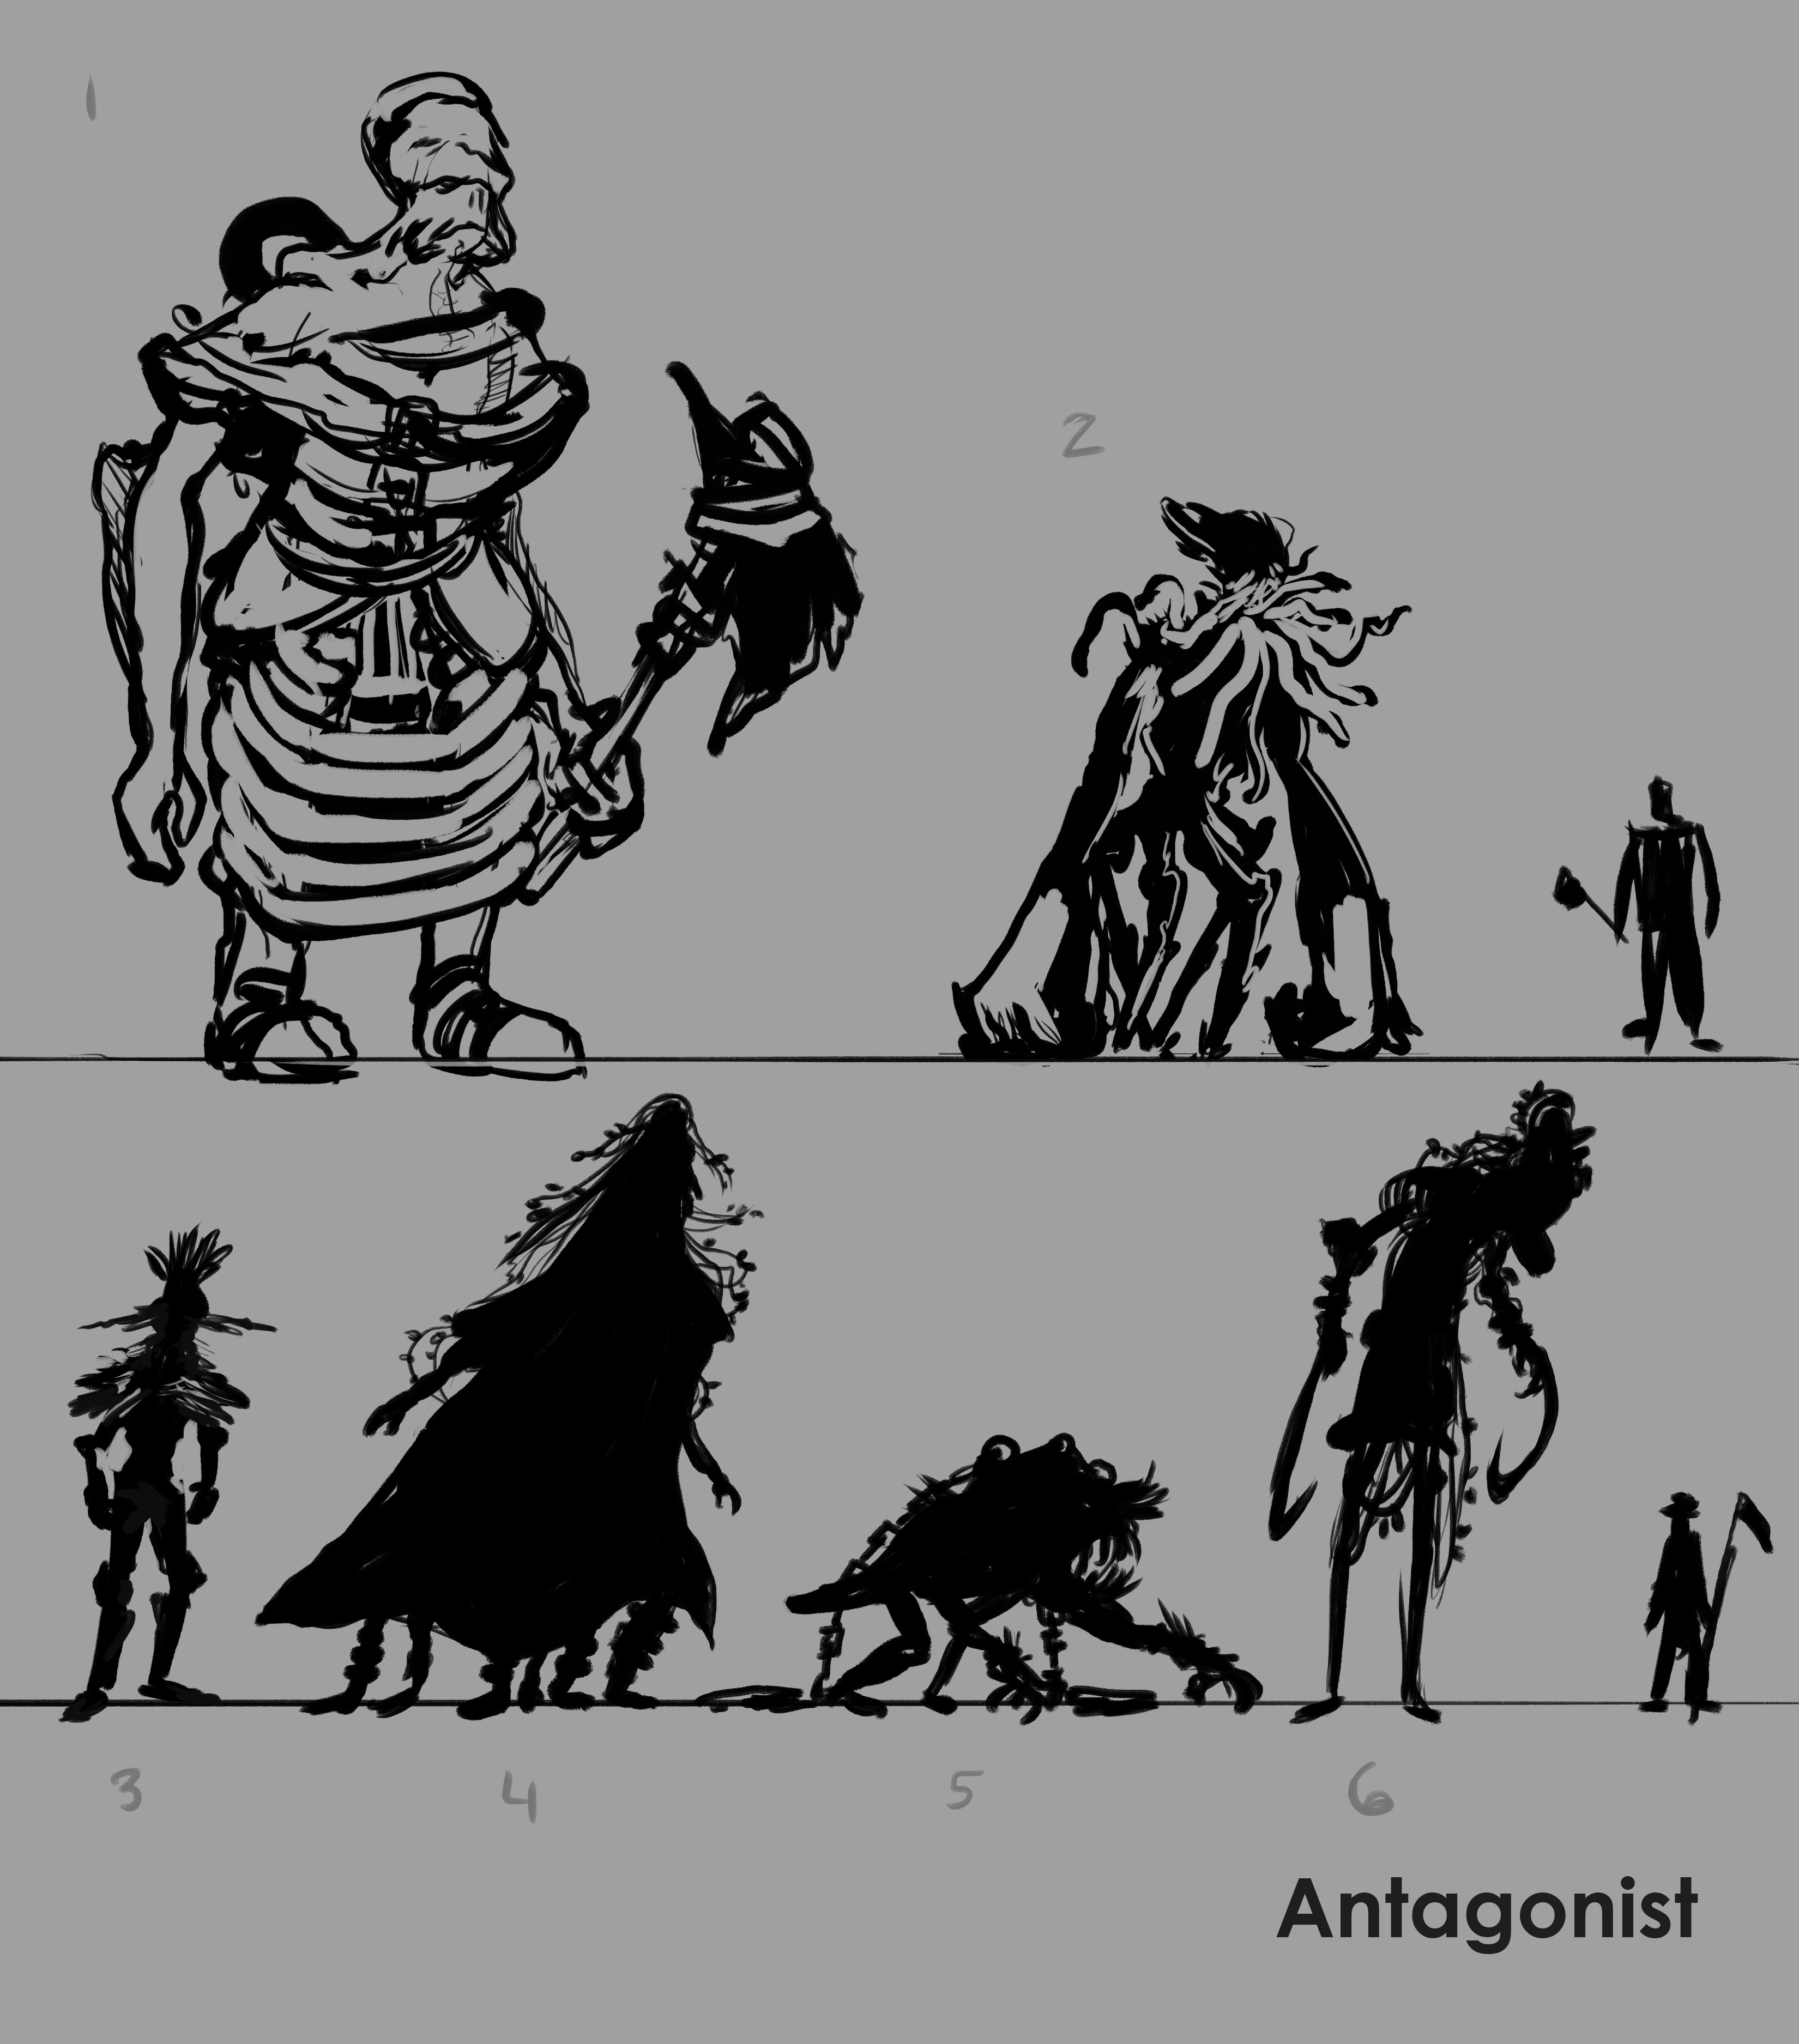 Antagonist/Creature concept sketches and silhouettes.